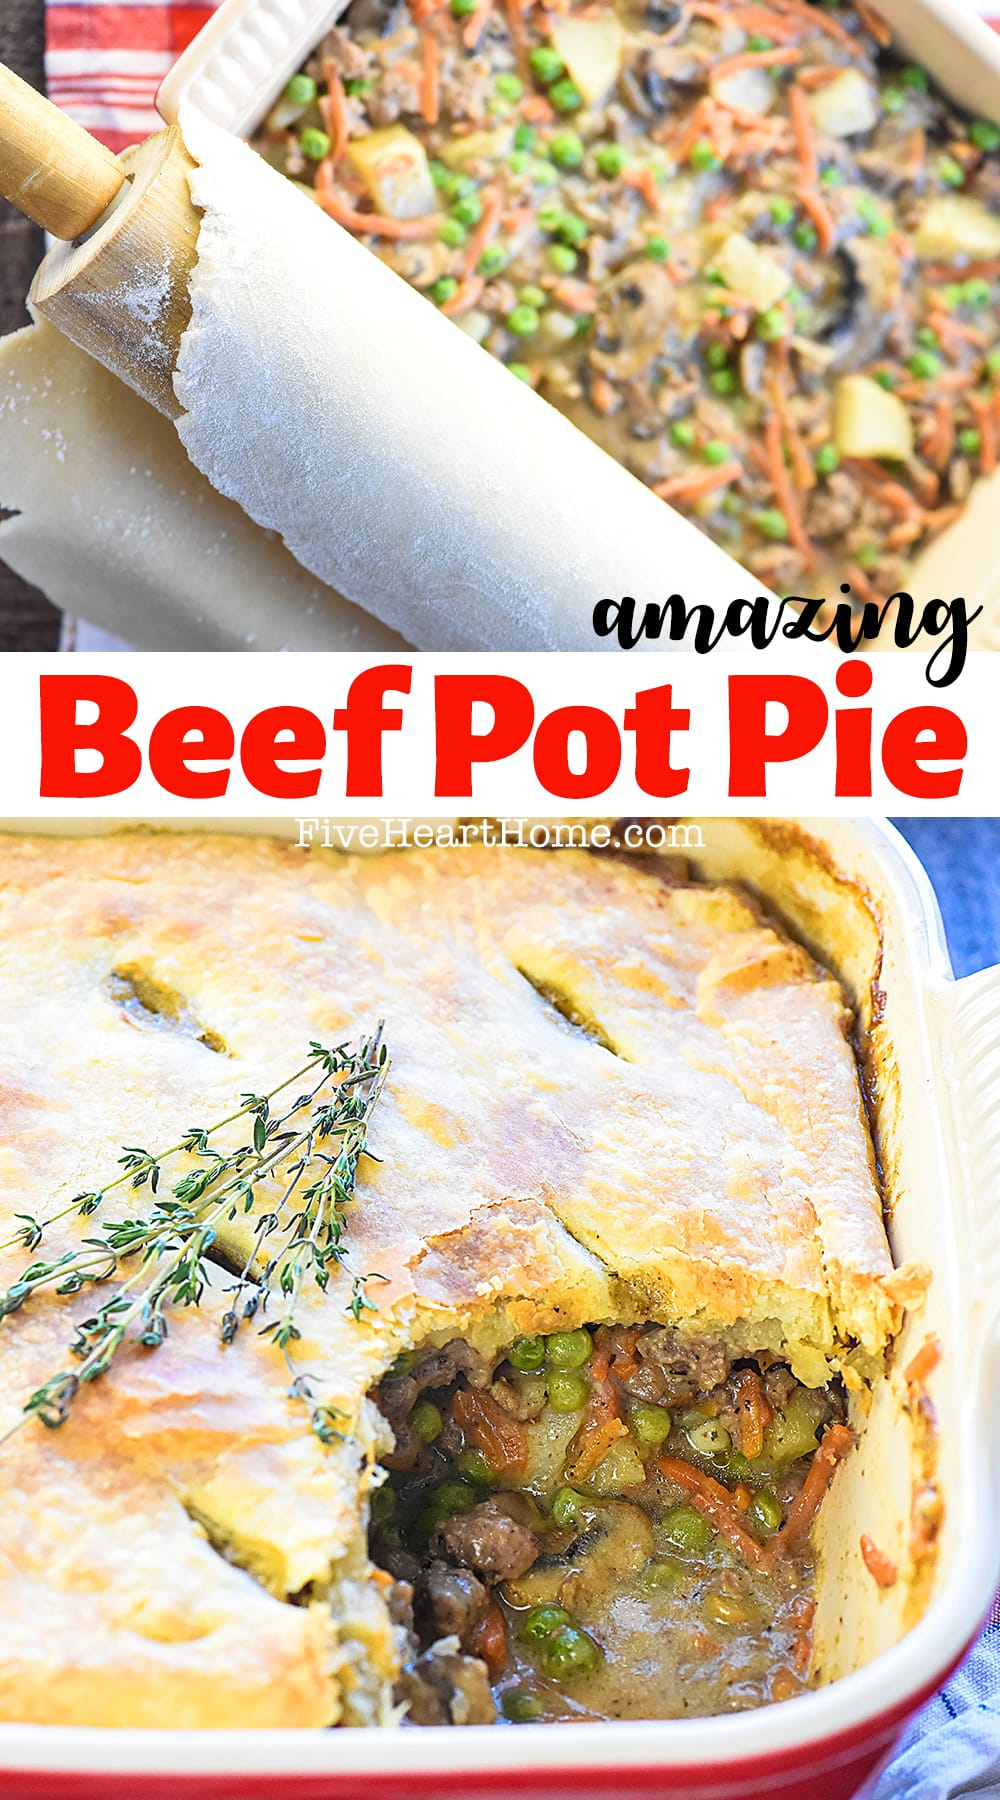 Beef Pot Pie ~ a hearty, delicious comfort food recipe featuring savory ground beef and veggies in a flavorful gravy topped by a flaky, buttery pie crust. And if you prefer, it's just as easy to make it with tender cubed beef! | FiveHeartHome.com via @fivehearthome